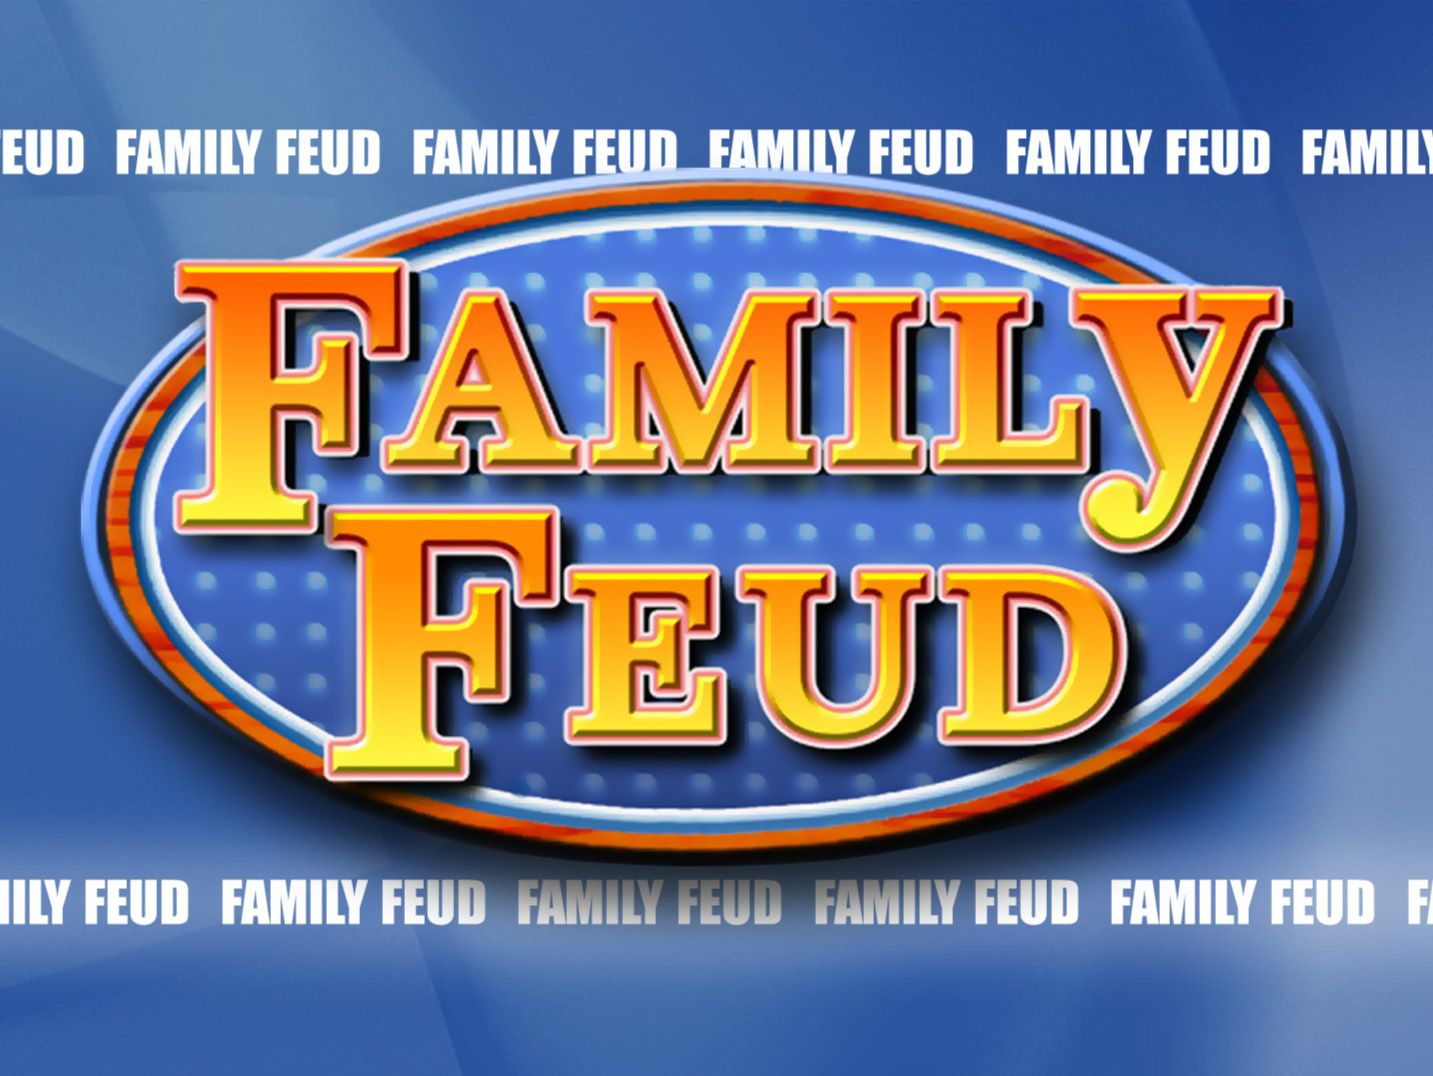 Family Feud PowerPoint Template 1 Family feud game